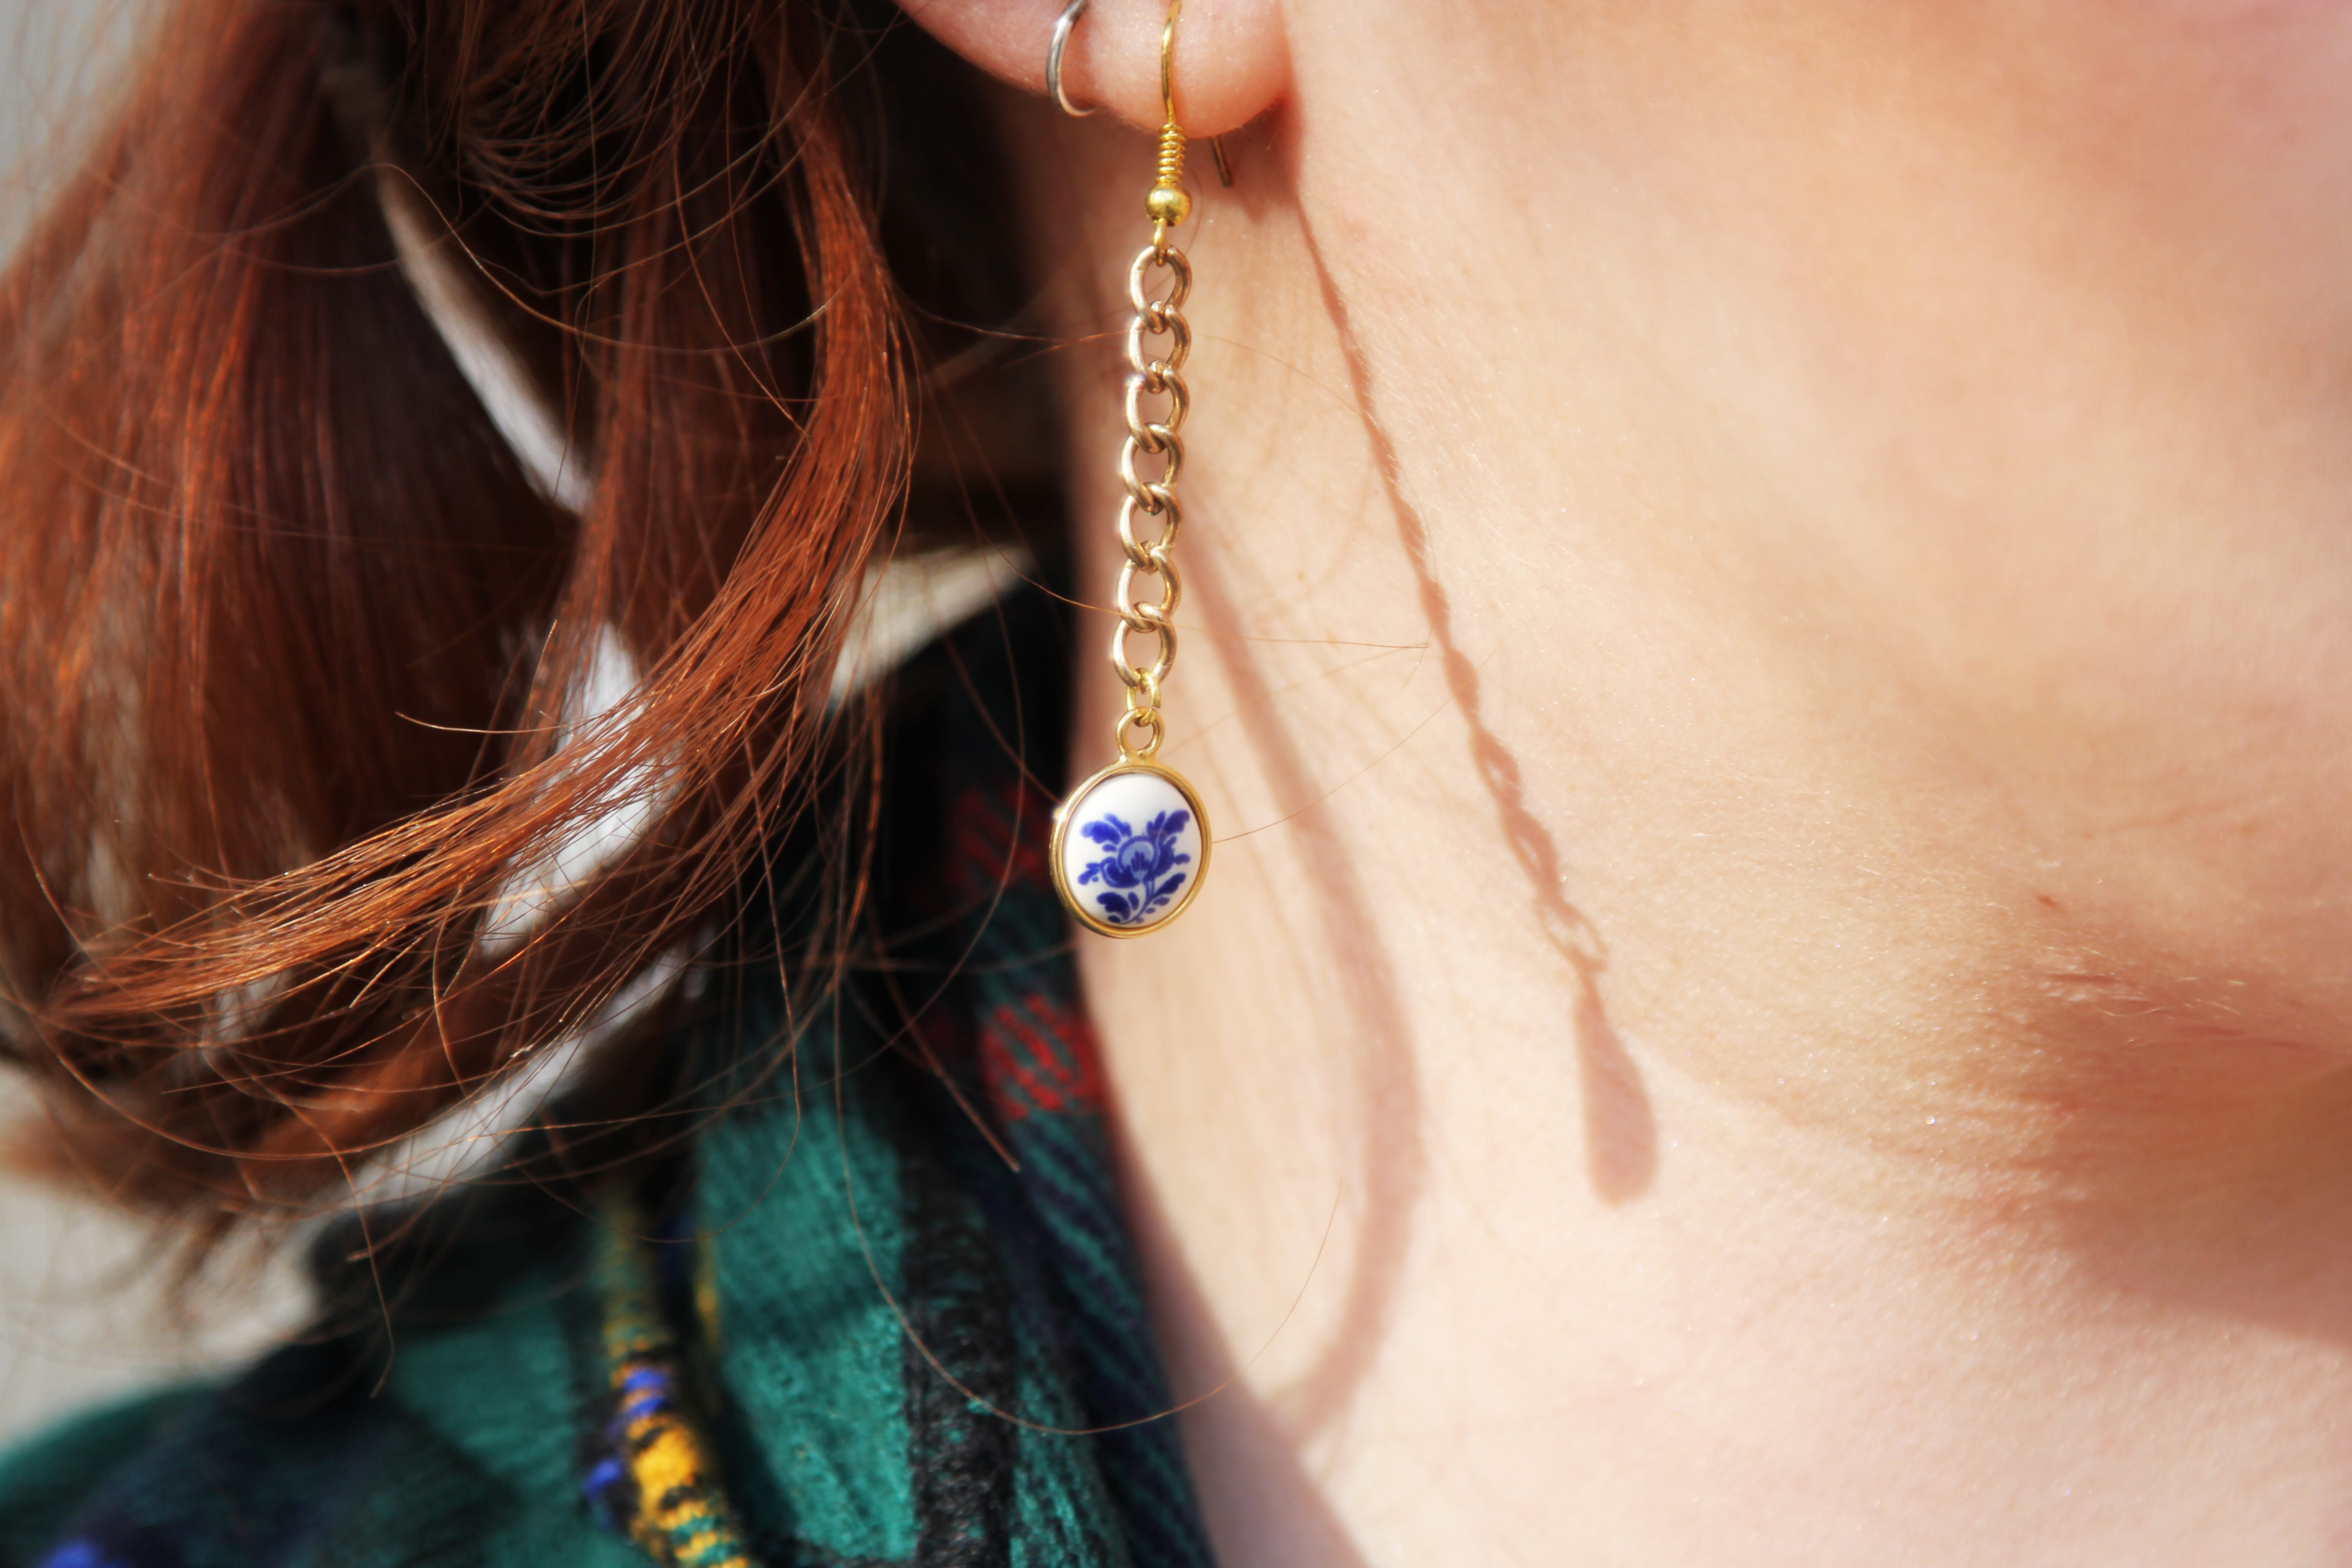 Close up shot of a fat person's neck and lower ear. Center of photo is an dangling earring with a gold chain.